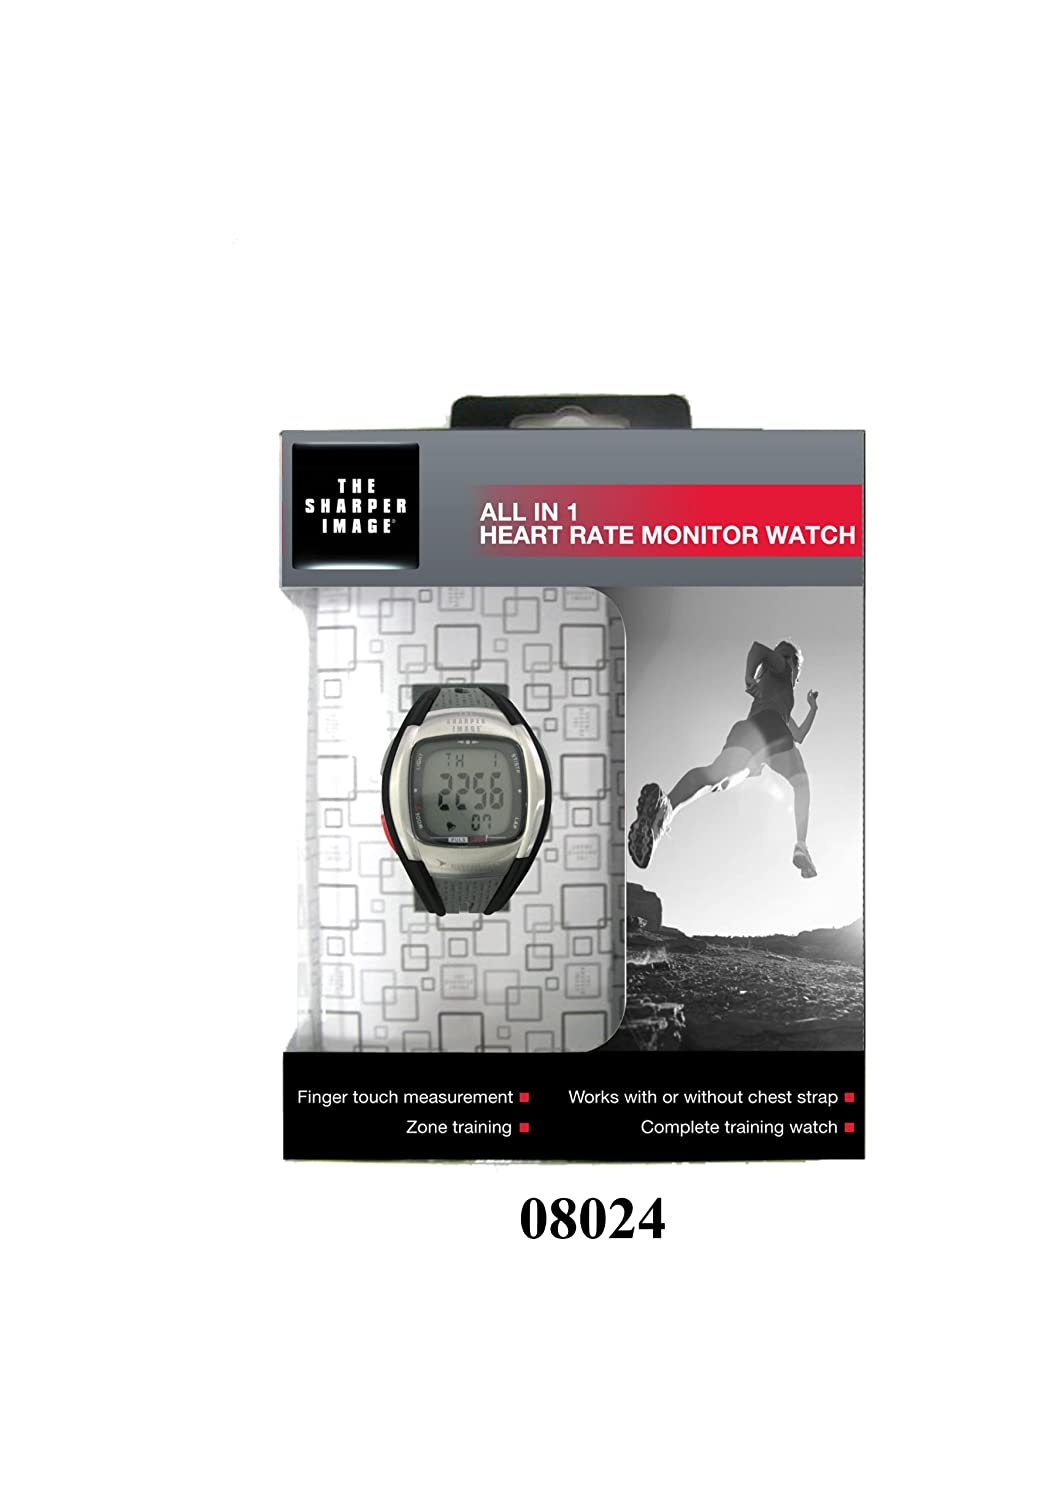 amazon com sharper image 08024 men s all in 1 heart rate monitor amazon com sharper image 08024 men s all in 1 heart rate monitor watch health personal care